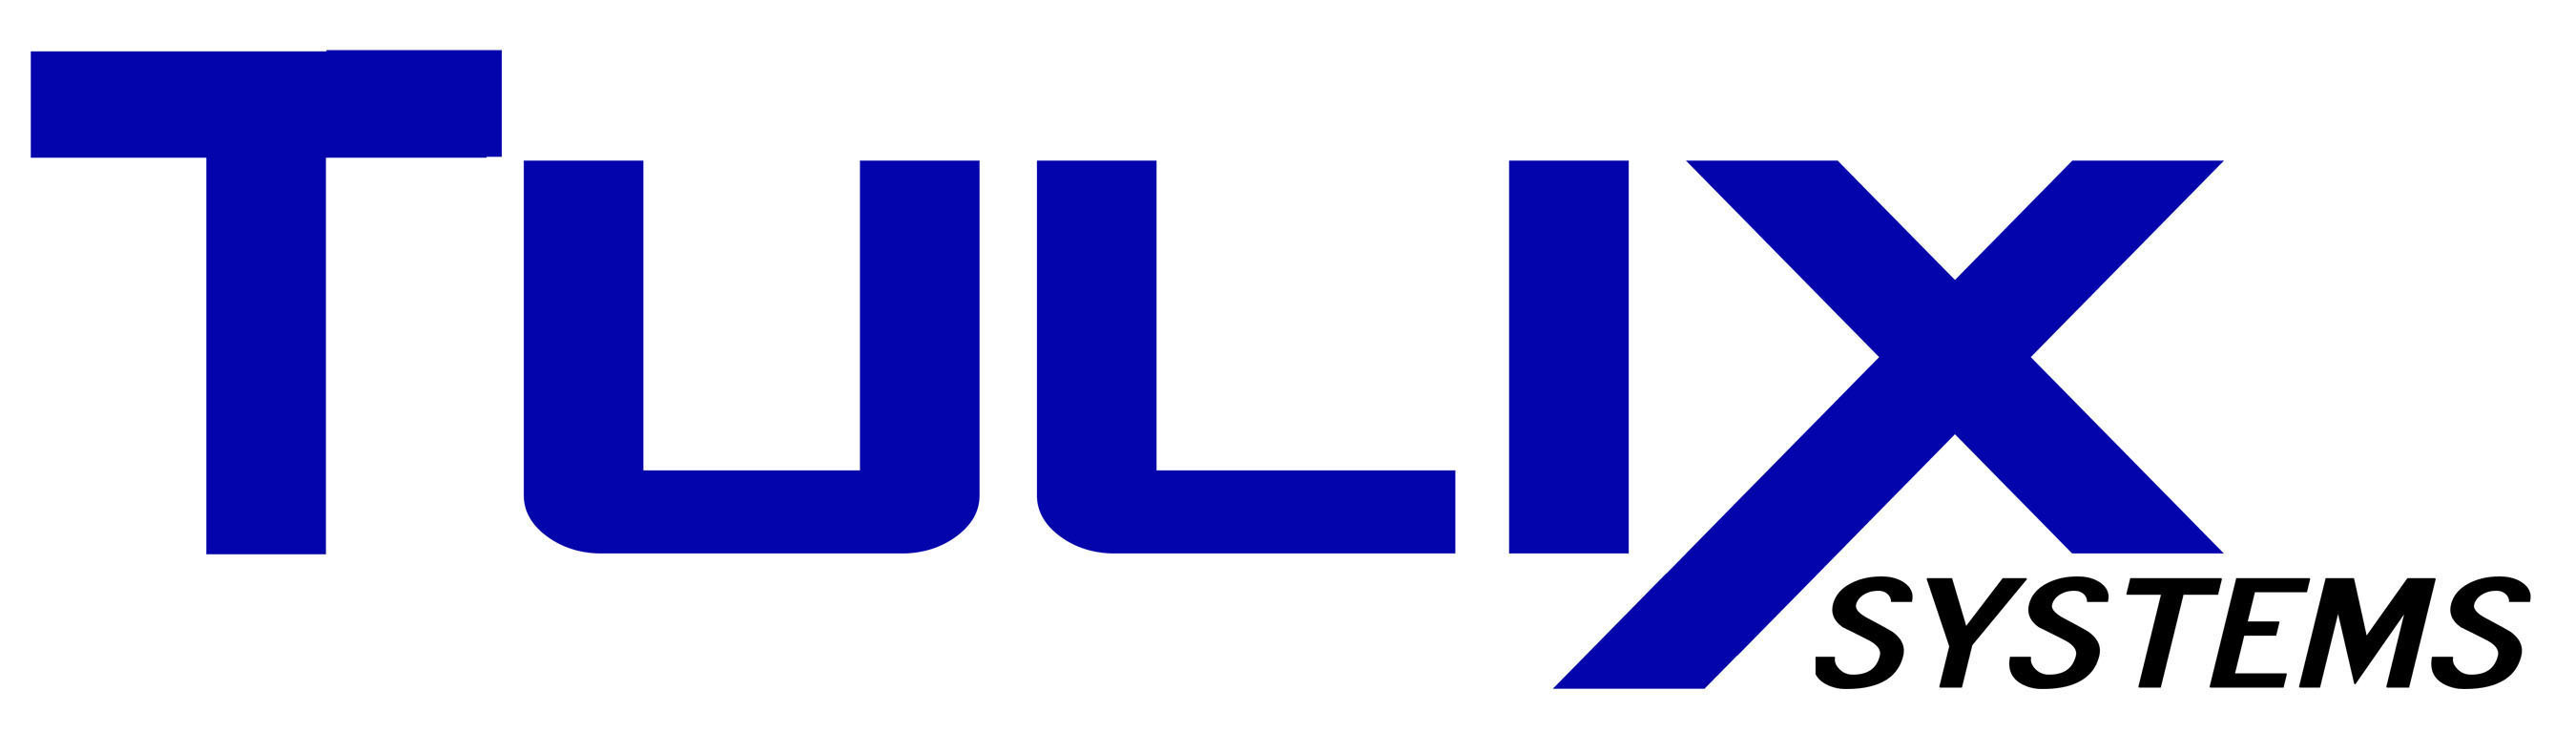 Tulix Systems provides professional streaming solutions for content owners and broadcasters. Tulix's ...